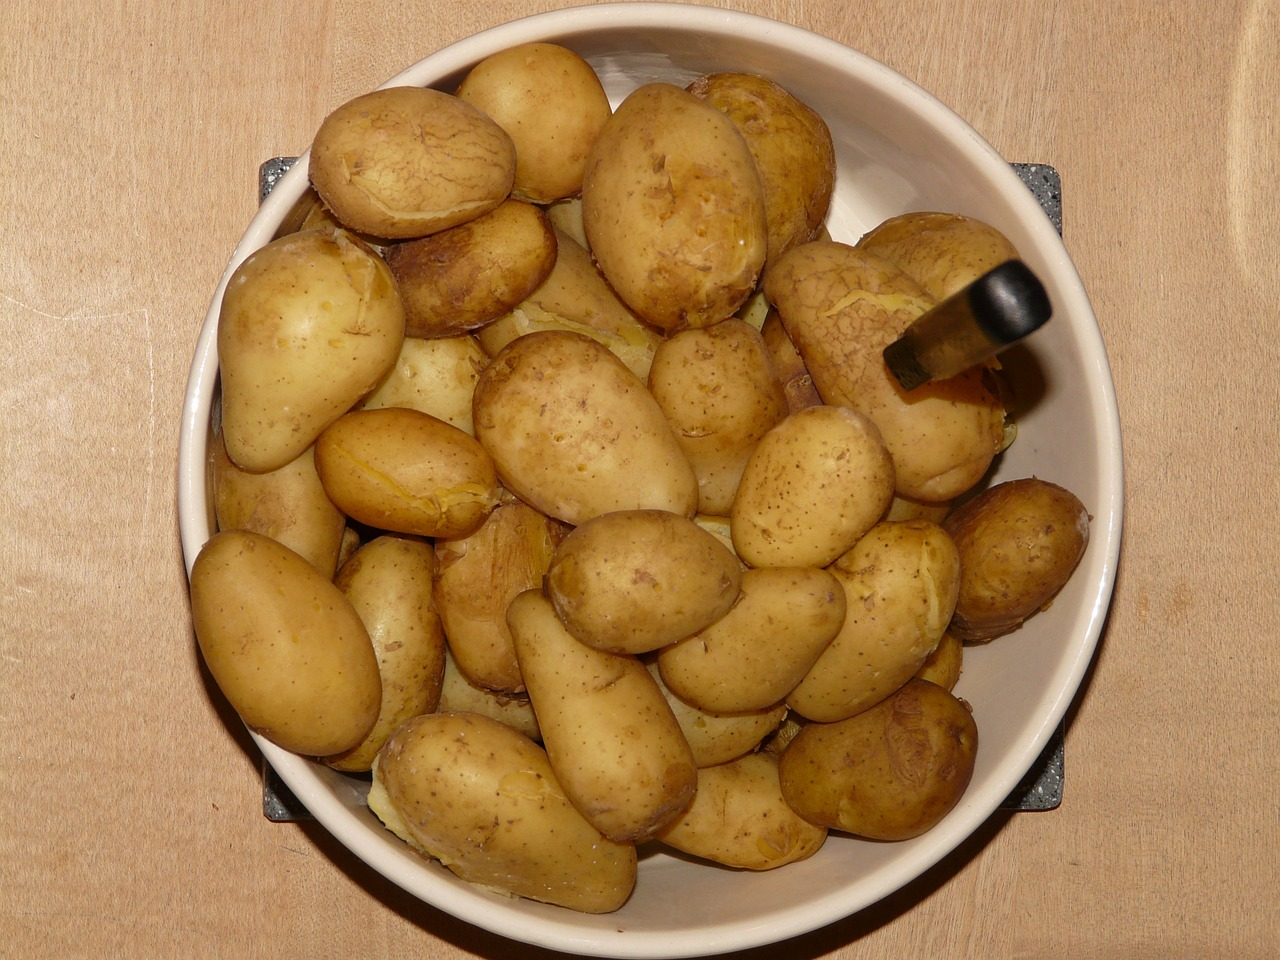 potatoes cooked cook free photo